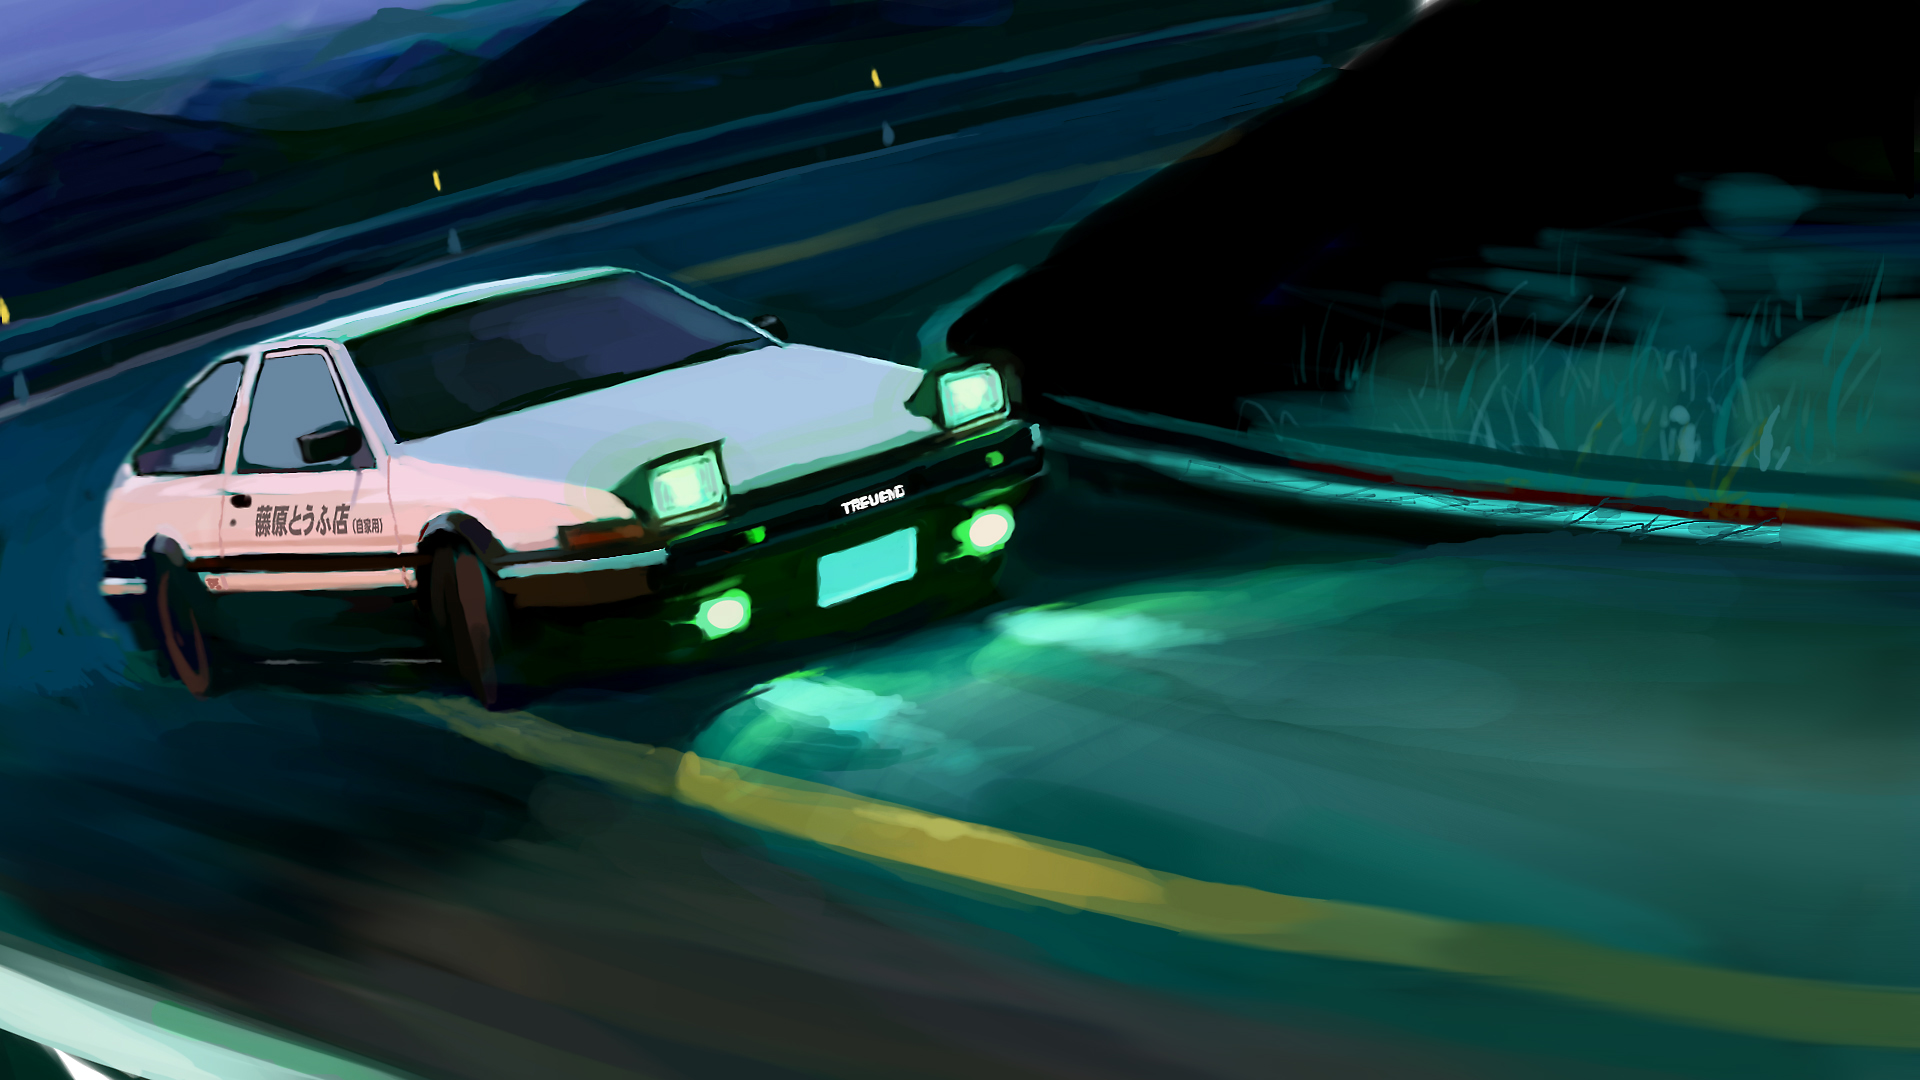 Hotline Miami Iphone Wallpaper Initial D Final Stage Hd Wallpaper Background Image